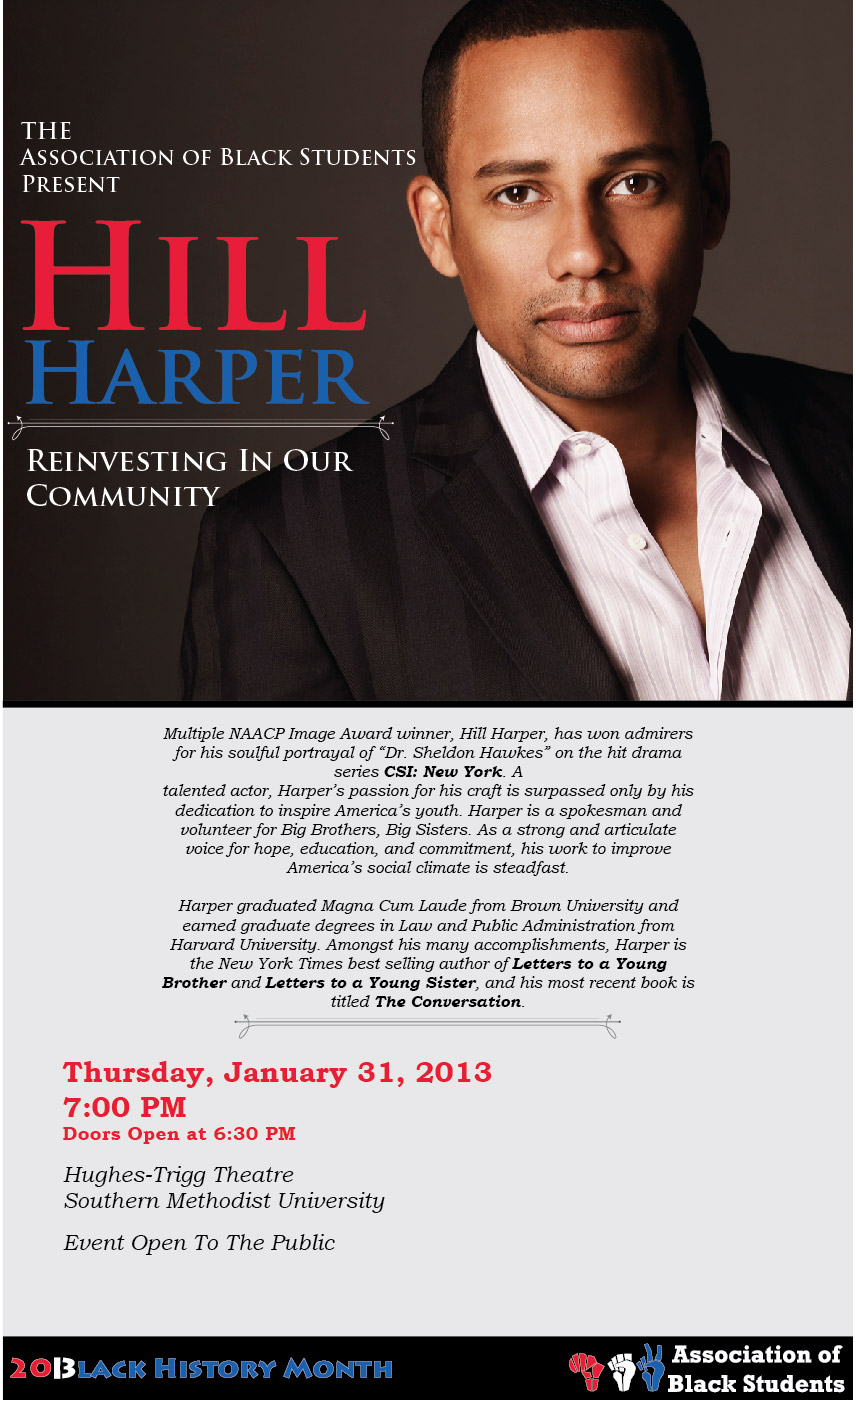 Hill Harper to speak at Southern Methodist University on 31 January 2013